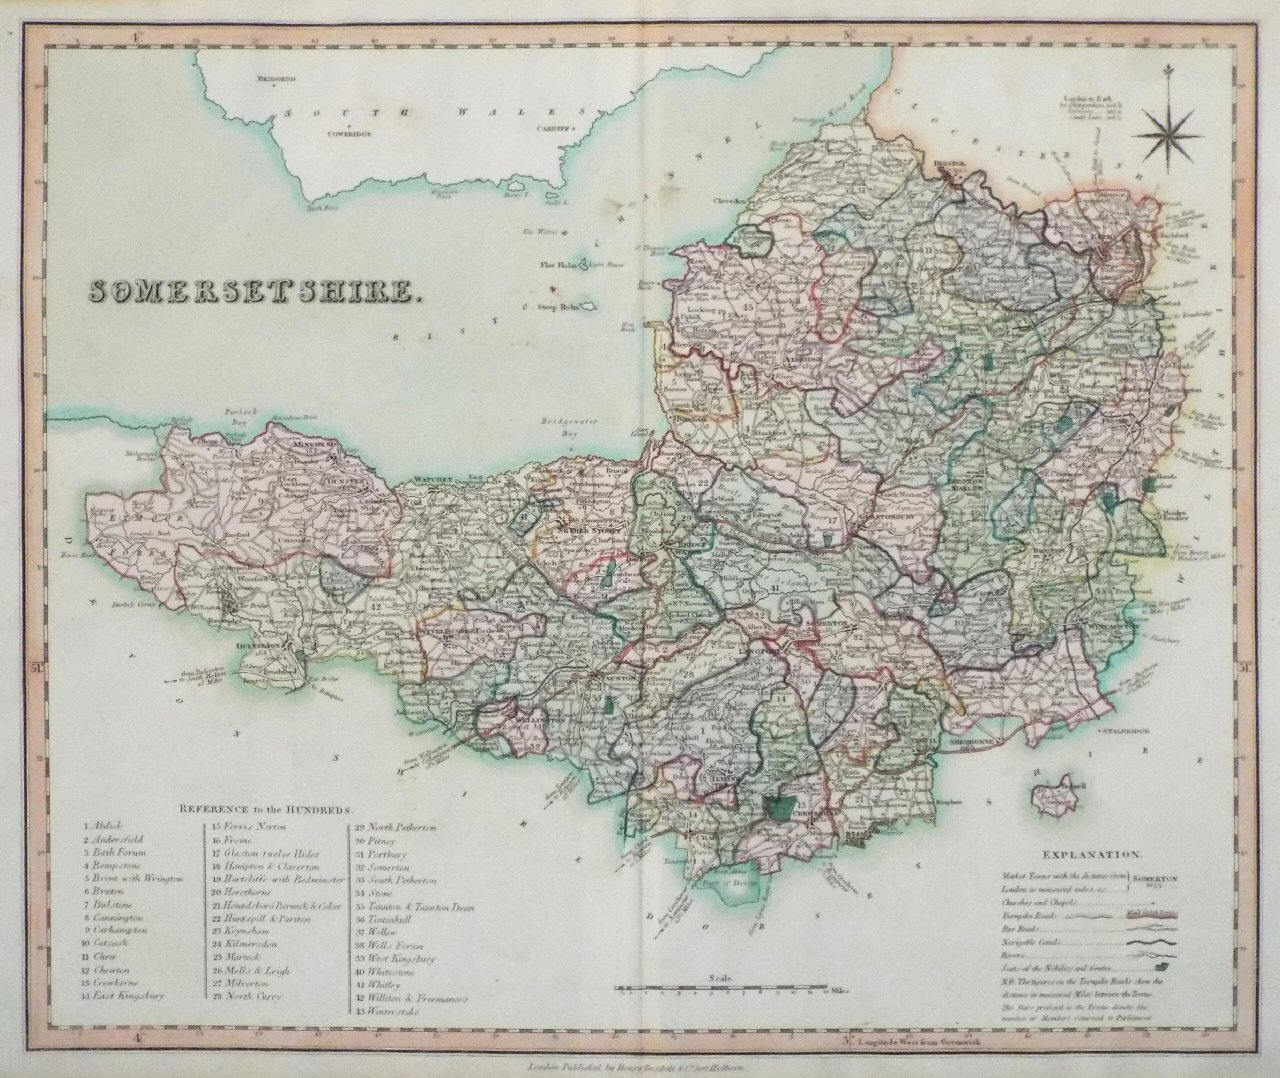 Map of Somerset - Teesdale